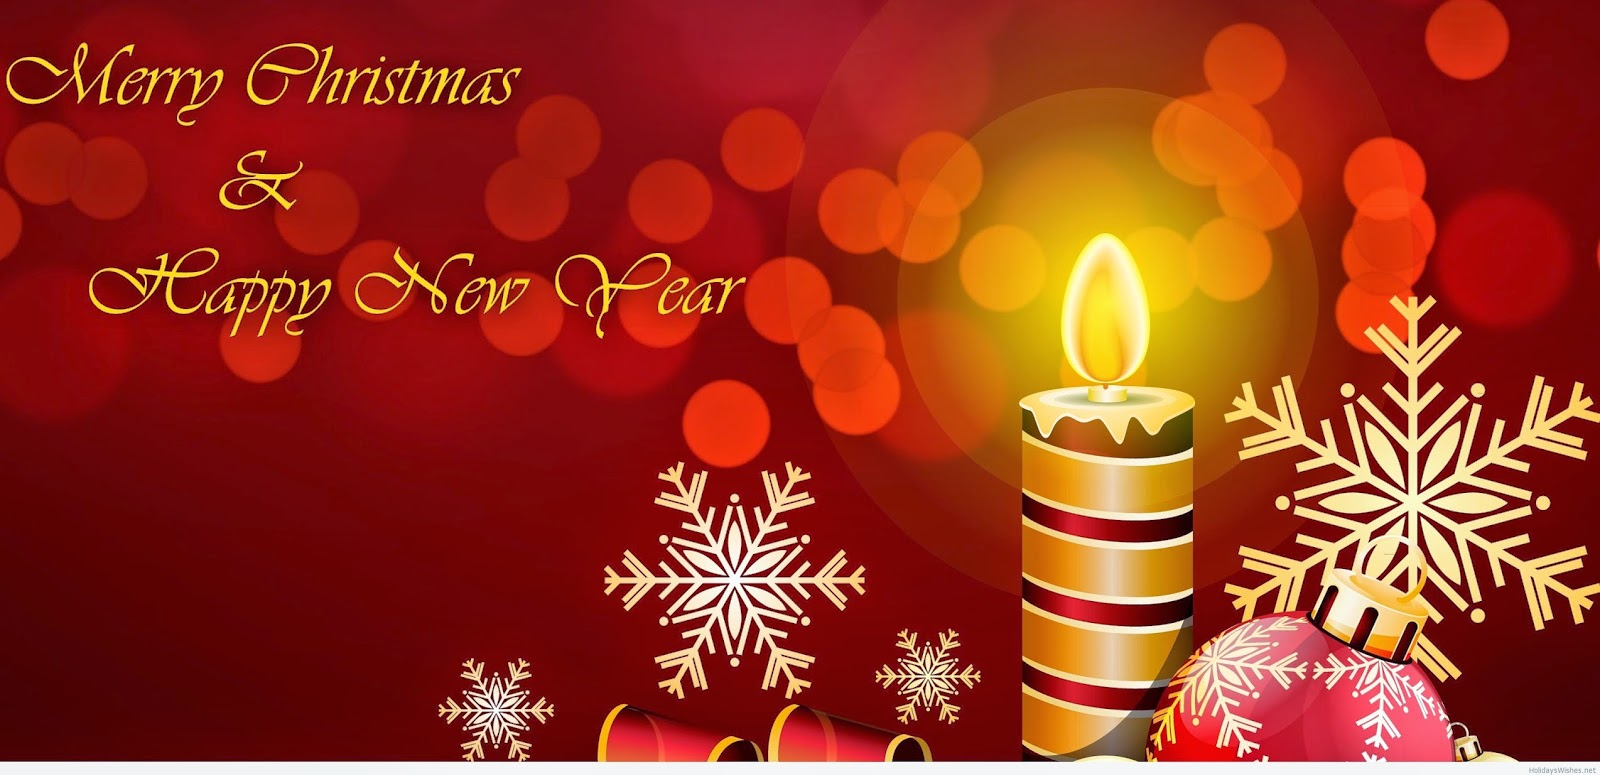 Merry christmas and happy new year 2015 greetings web designer merry christmas and happy new year 2015 greetings kristyandbryce Gallery